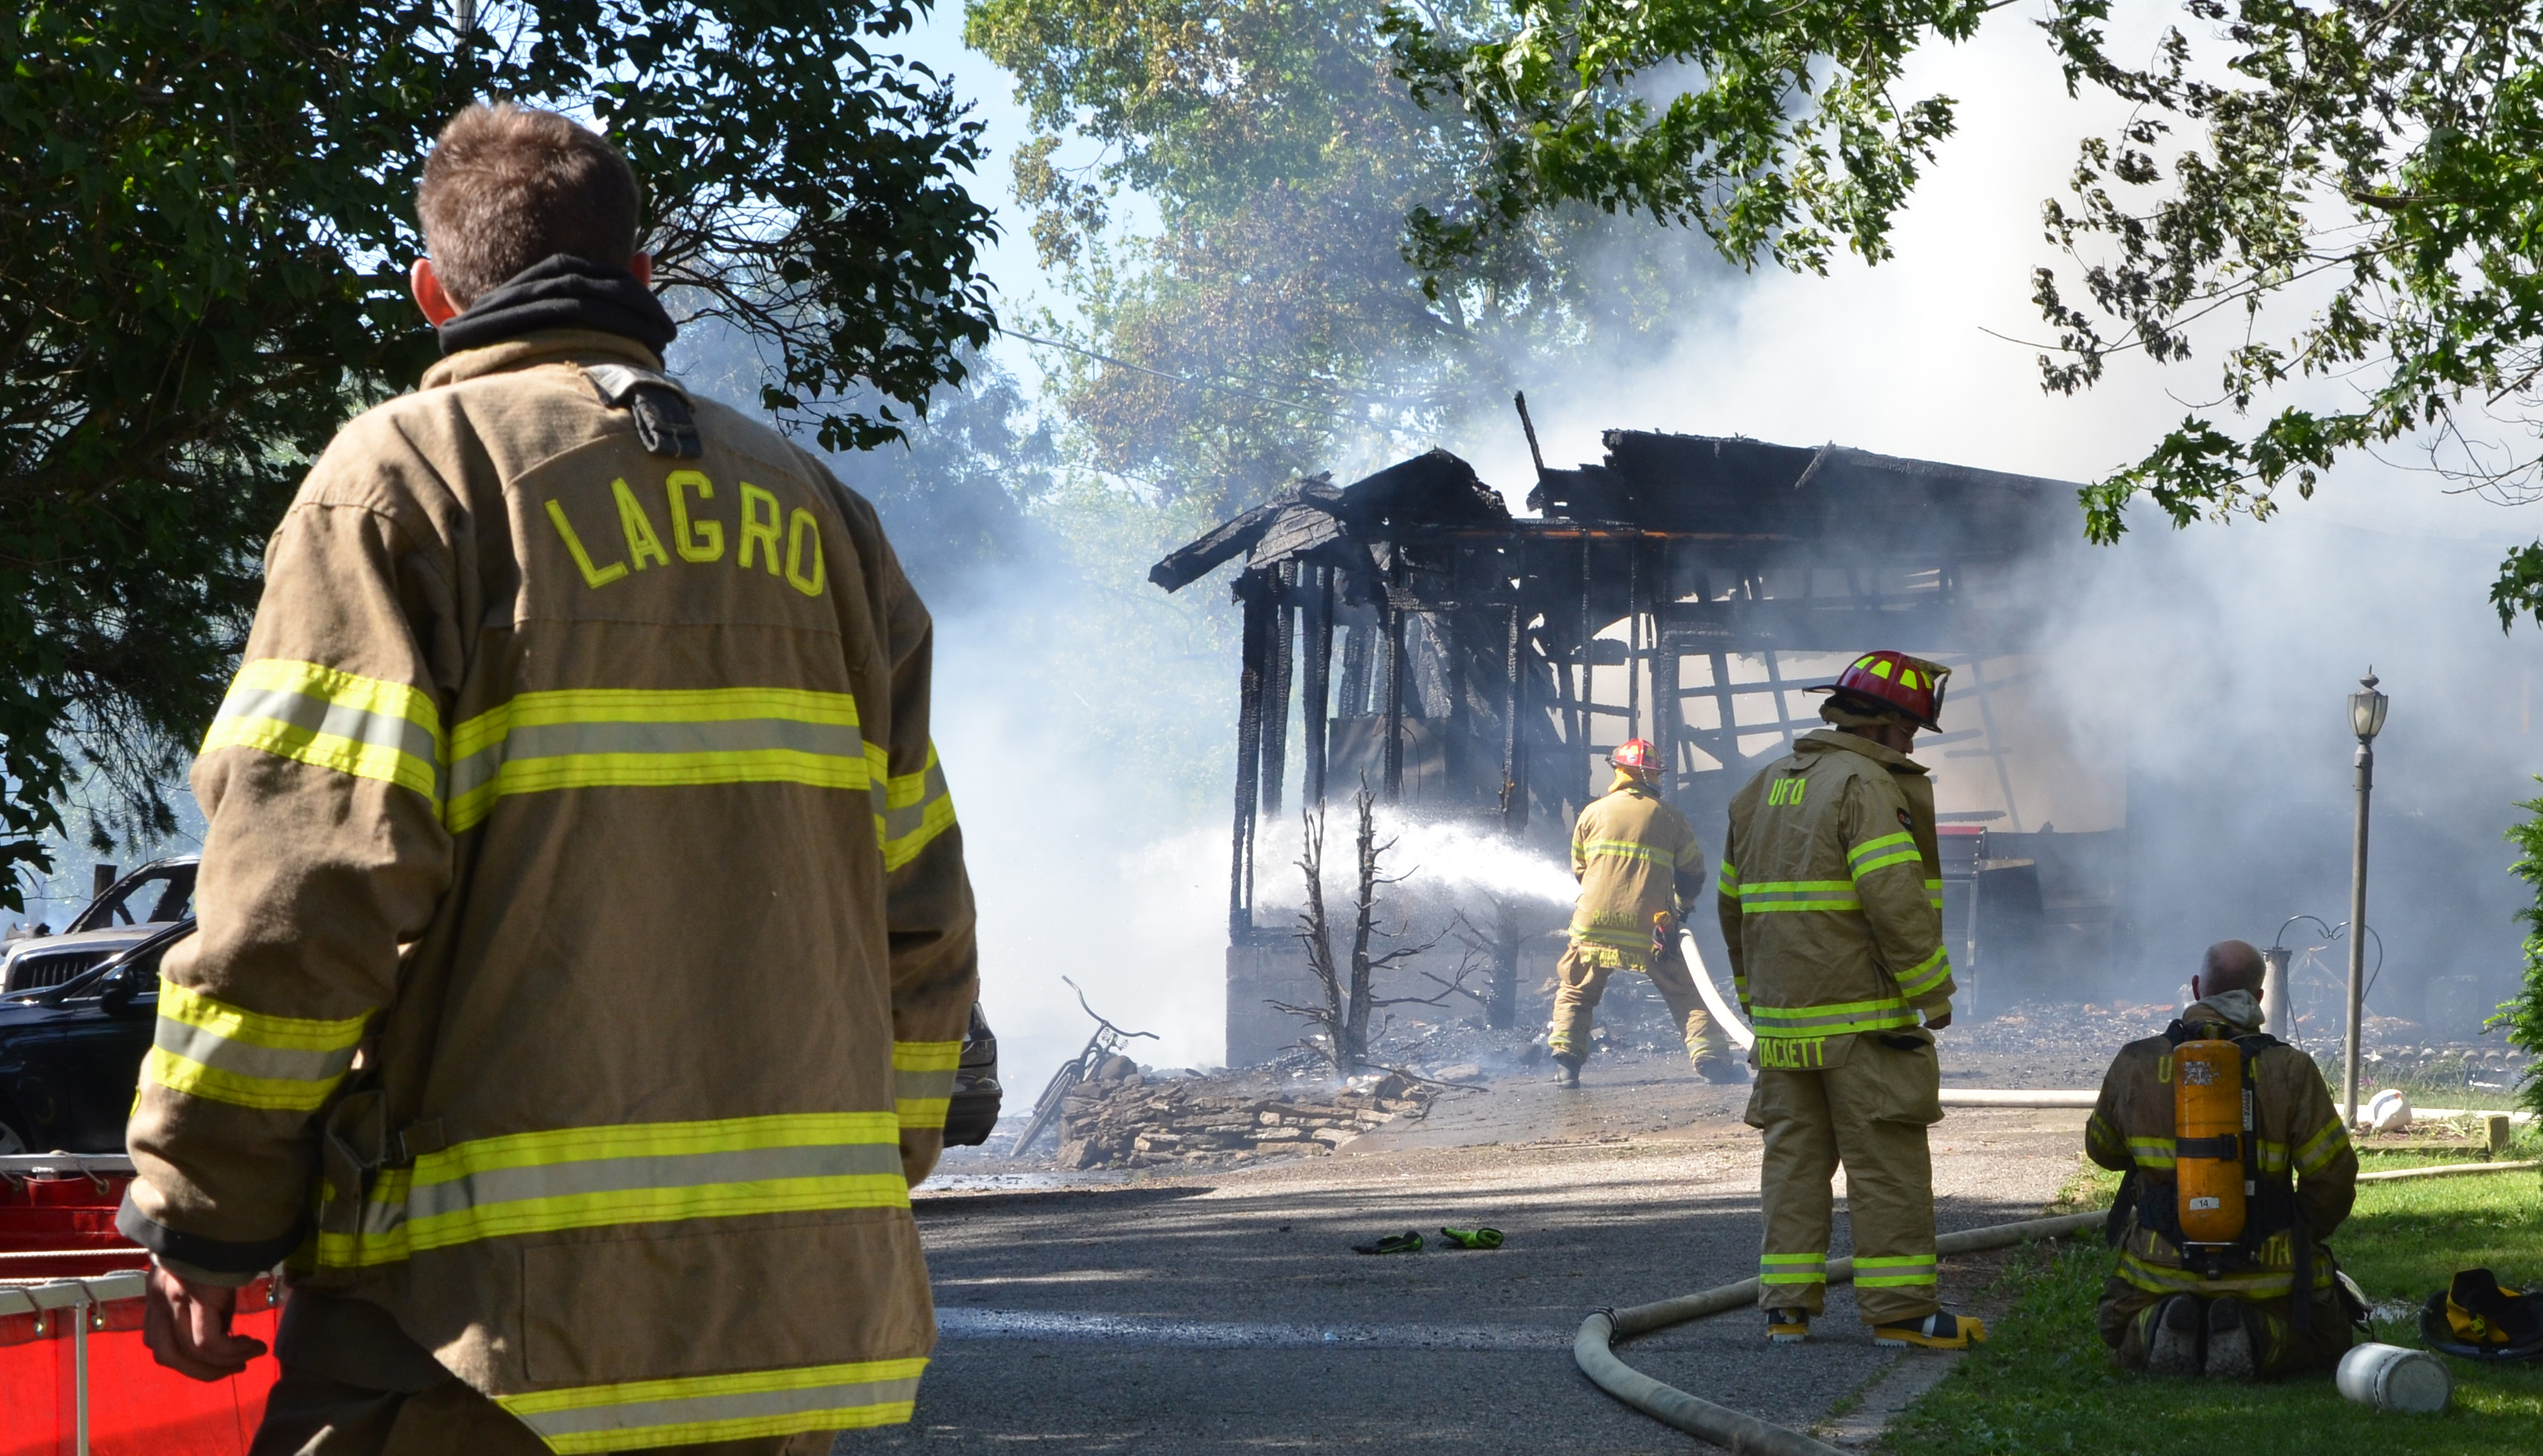 Indiana wabash county lagro - Lagro Volunteer Firefighters And Personnel From Five Other Area Fire Departments Assisted Noble Township Fire Department In Dousing A House Fire That